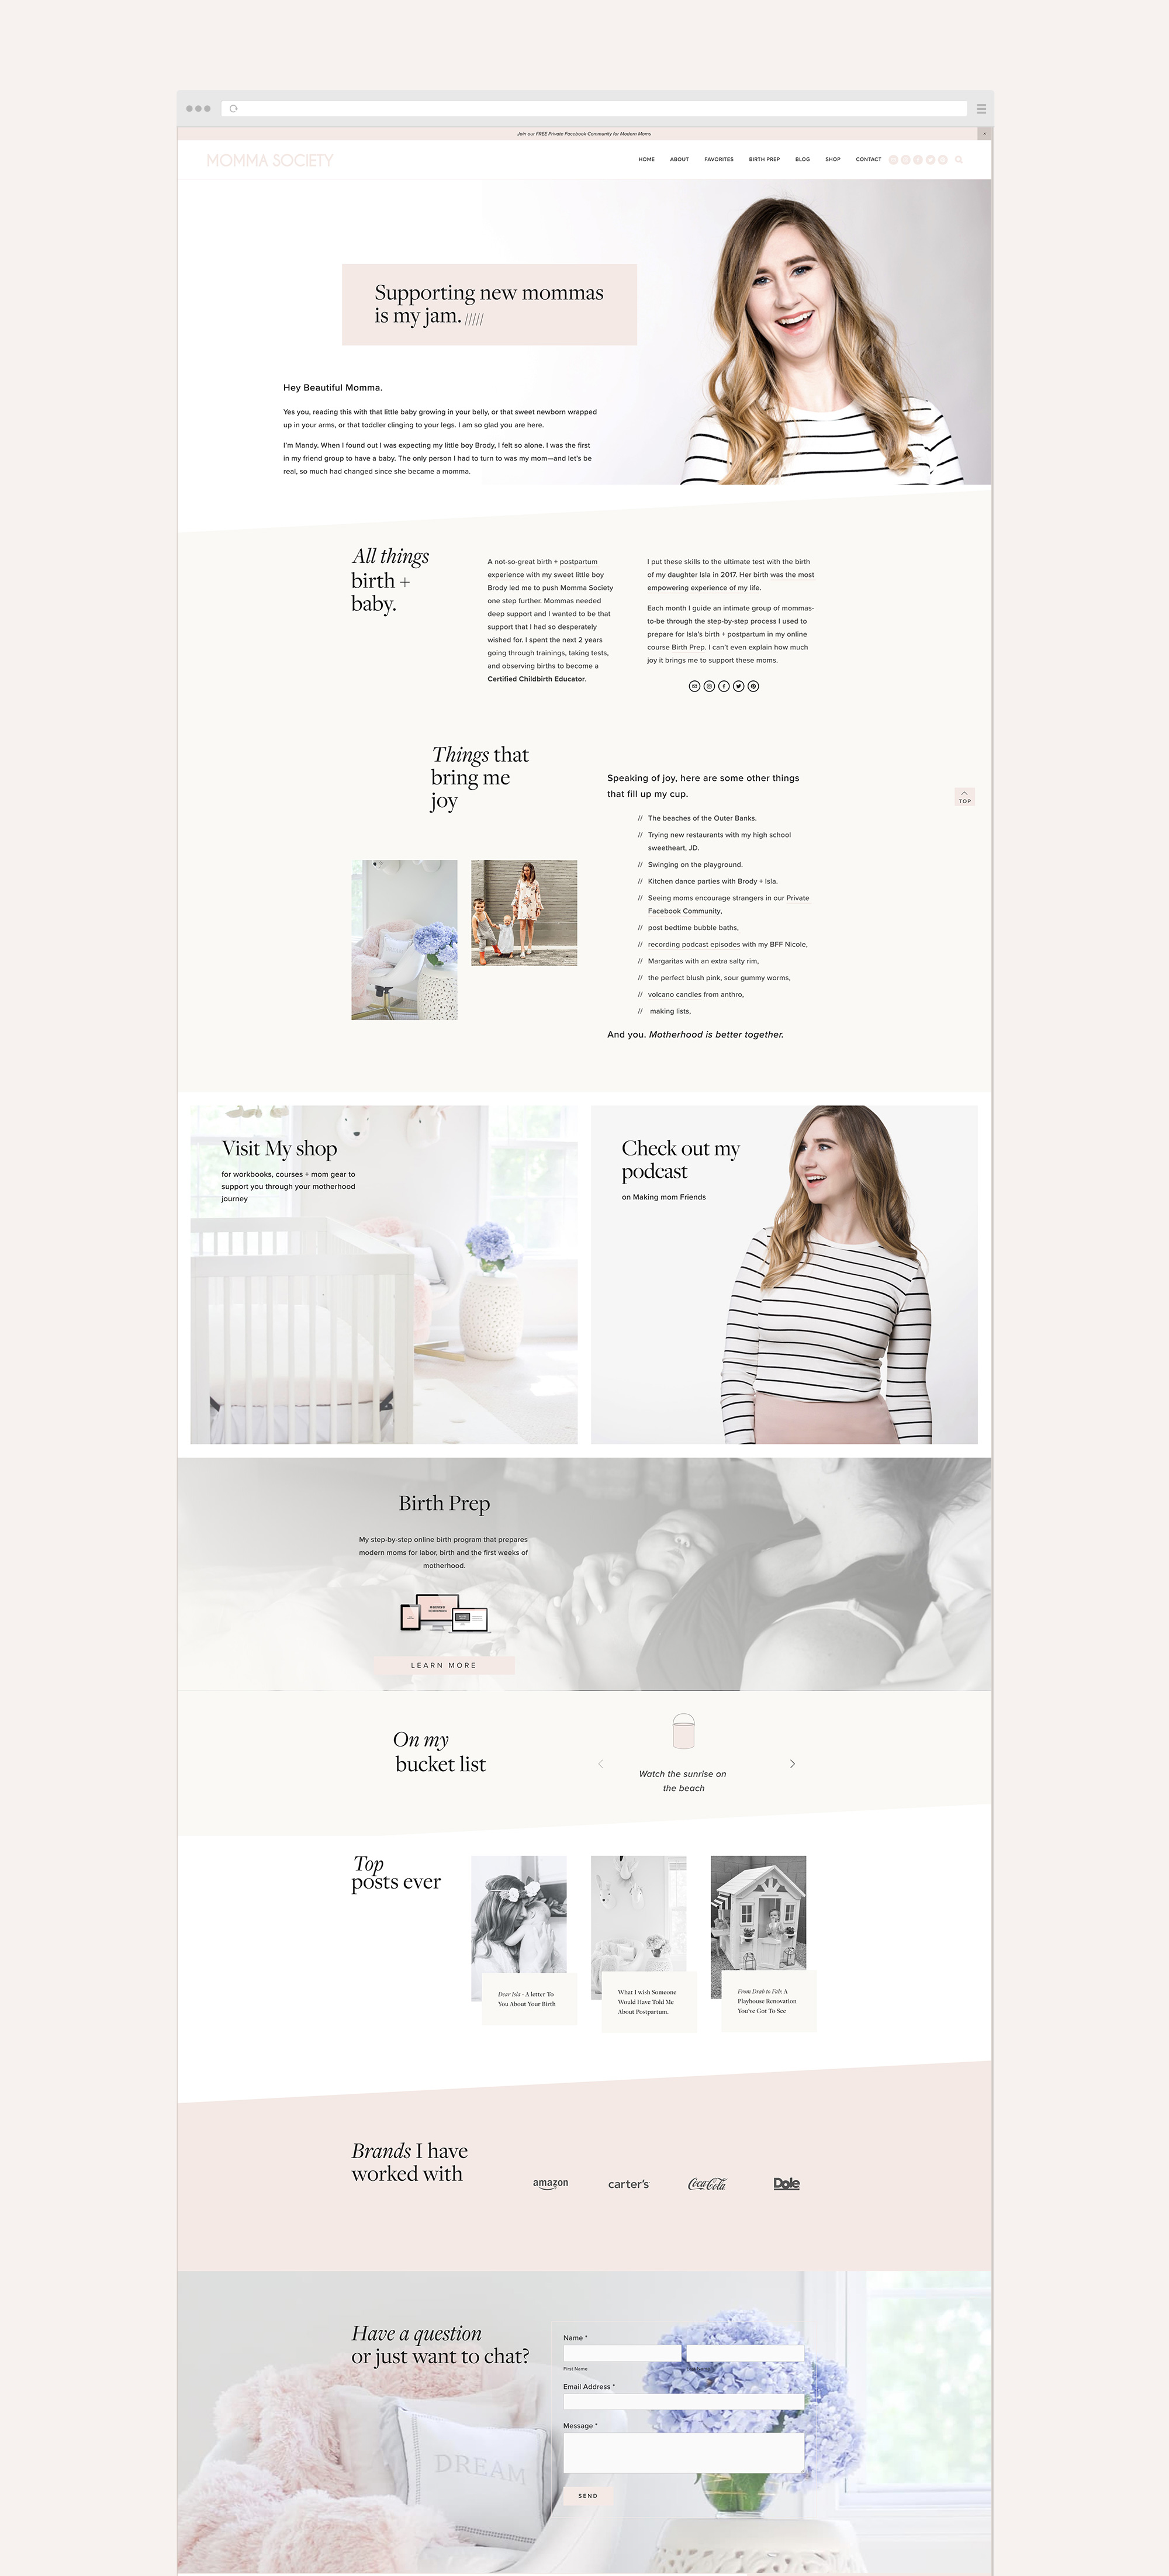 About Mandy page | Momma Society Squarespace website by Jodi Neufeld Design